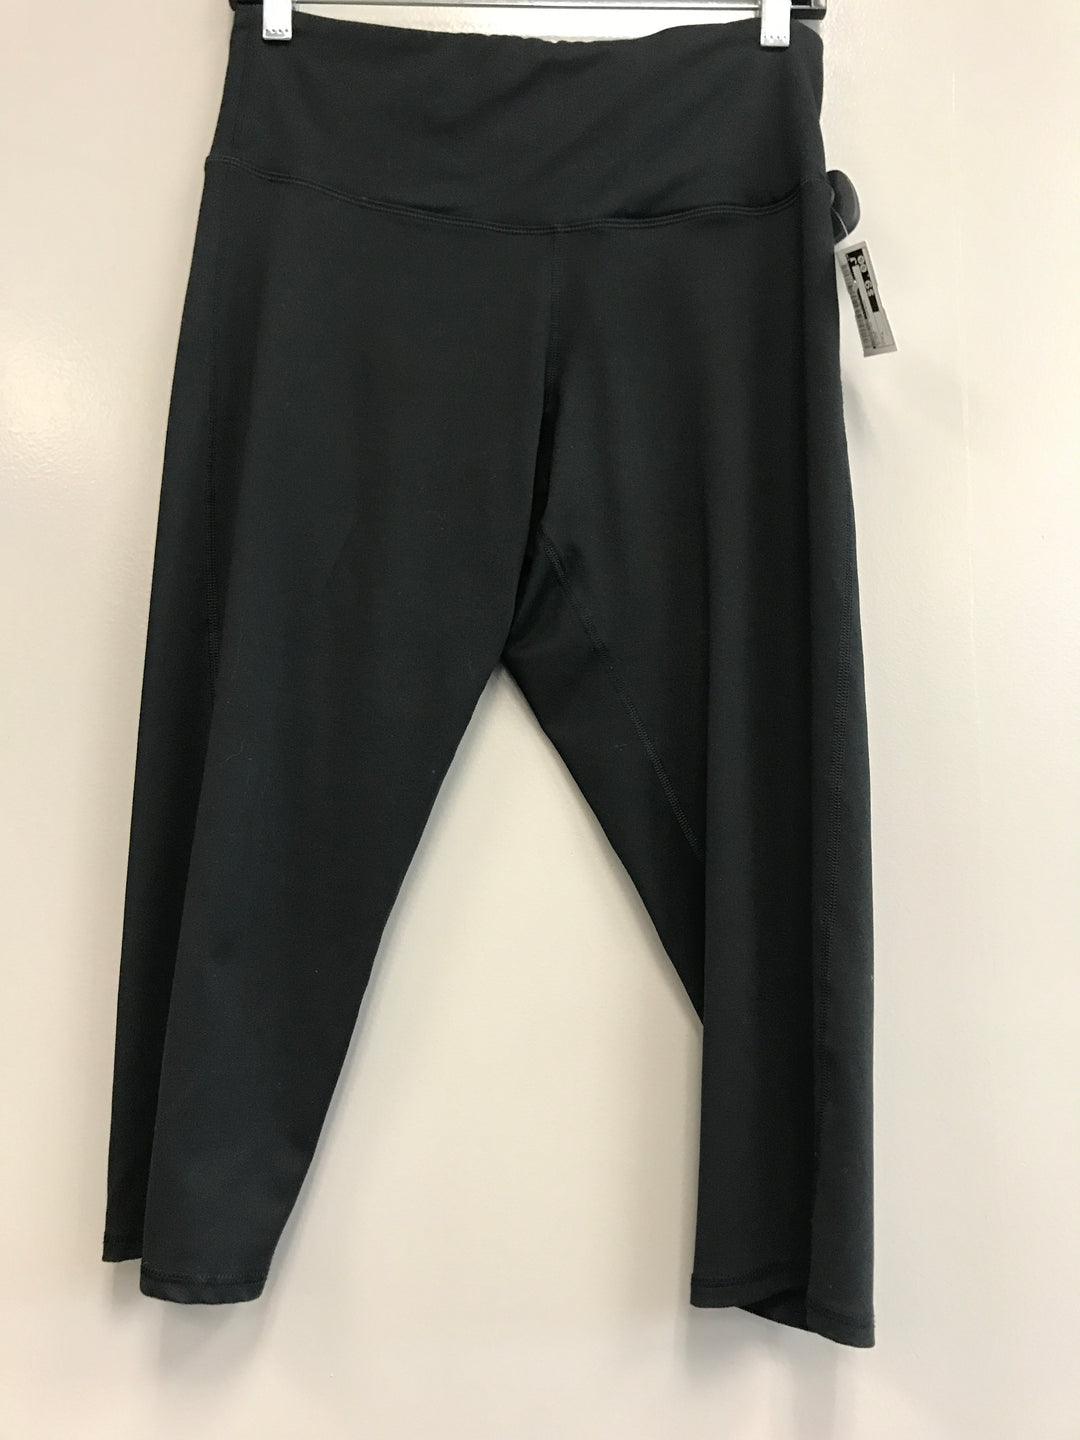 Primary Photo - BRAND: CHAMPION <BR>STYLE: ATHLETIC CAPRIS <BR>COLOR: BLACK <BR>SIZE: L <BR>SKU: 313-31344-17110